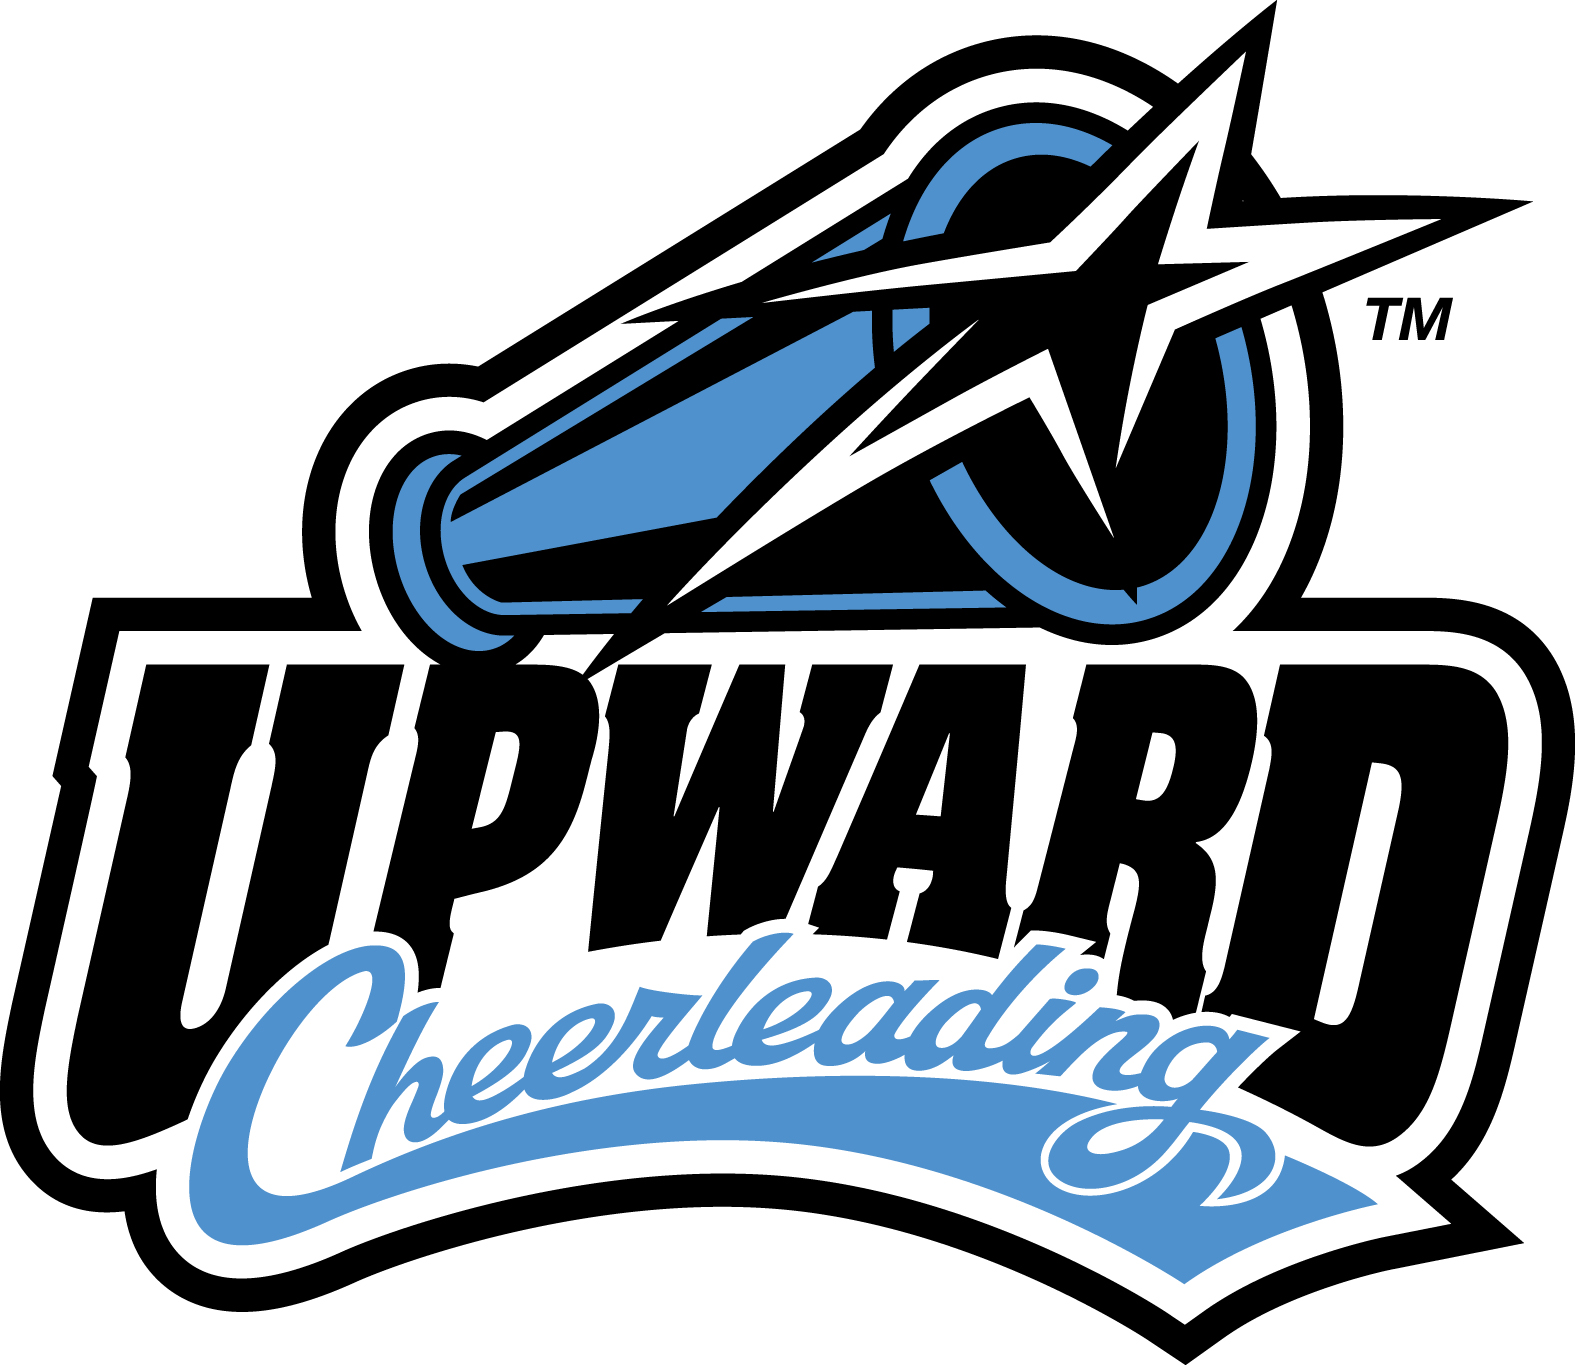 Upward basketball clipart picture black and white 17 Best images about Upward Cheerleading on Pinterest   Purpose ... picture black and white